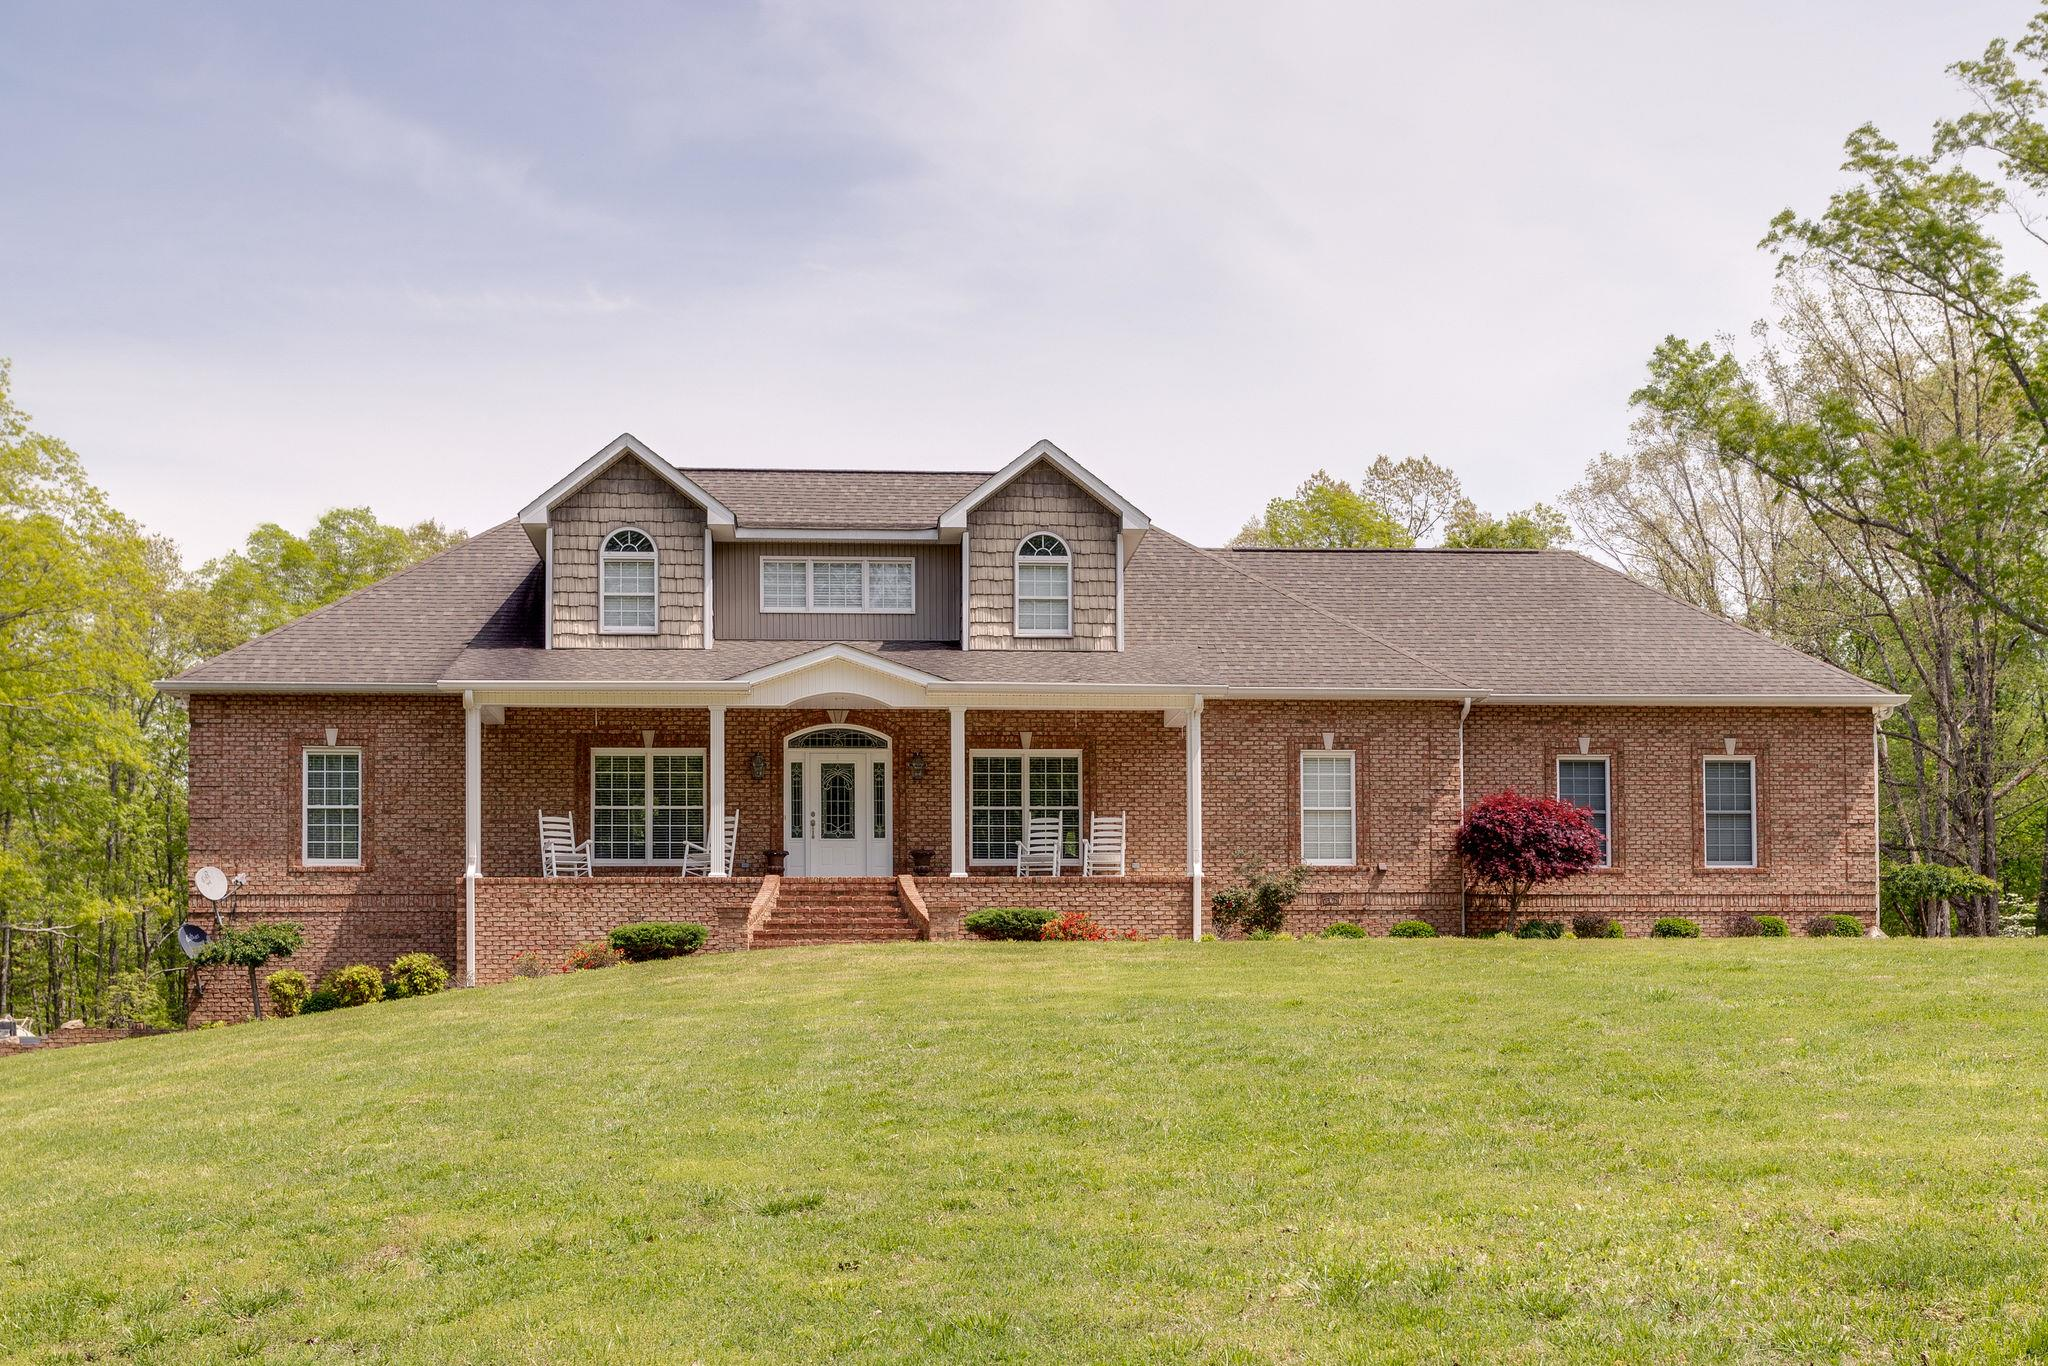 135 Vols Lane, Estill Springs, TN 37330 - Estill Springs, TN real estate listing